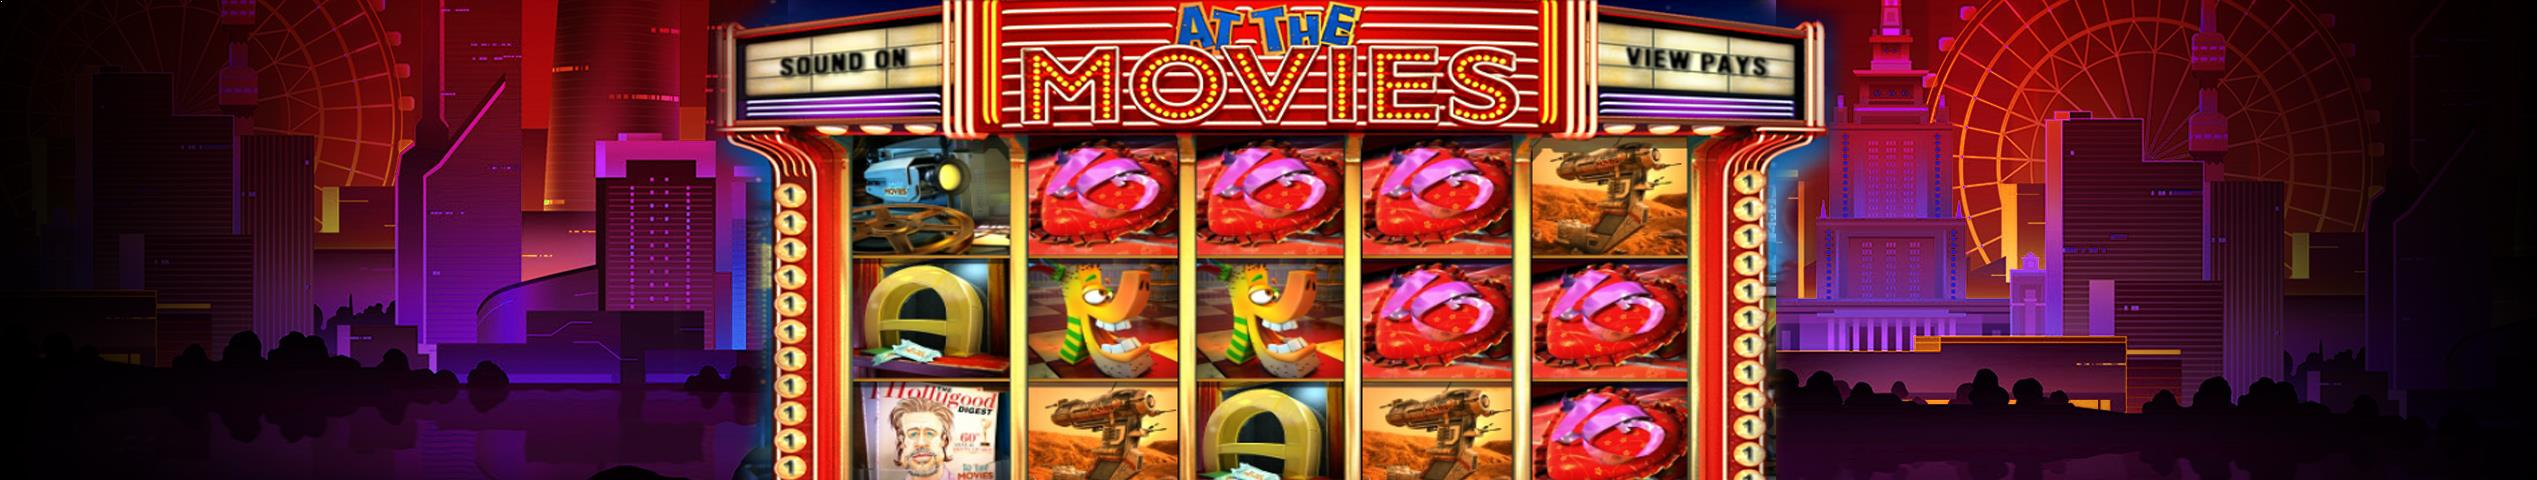 At the Movies Multa Baft jocuri slot slider Betsoft